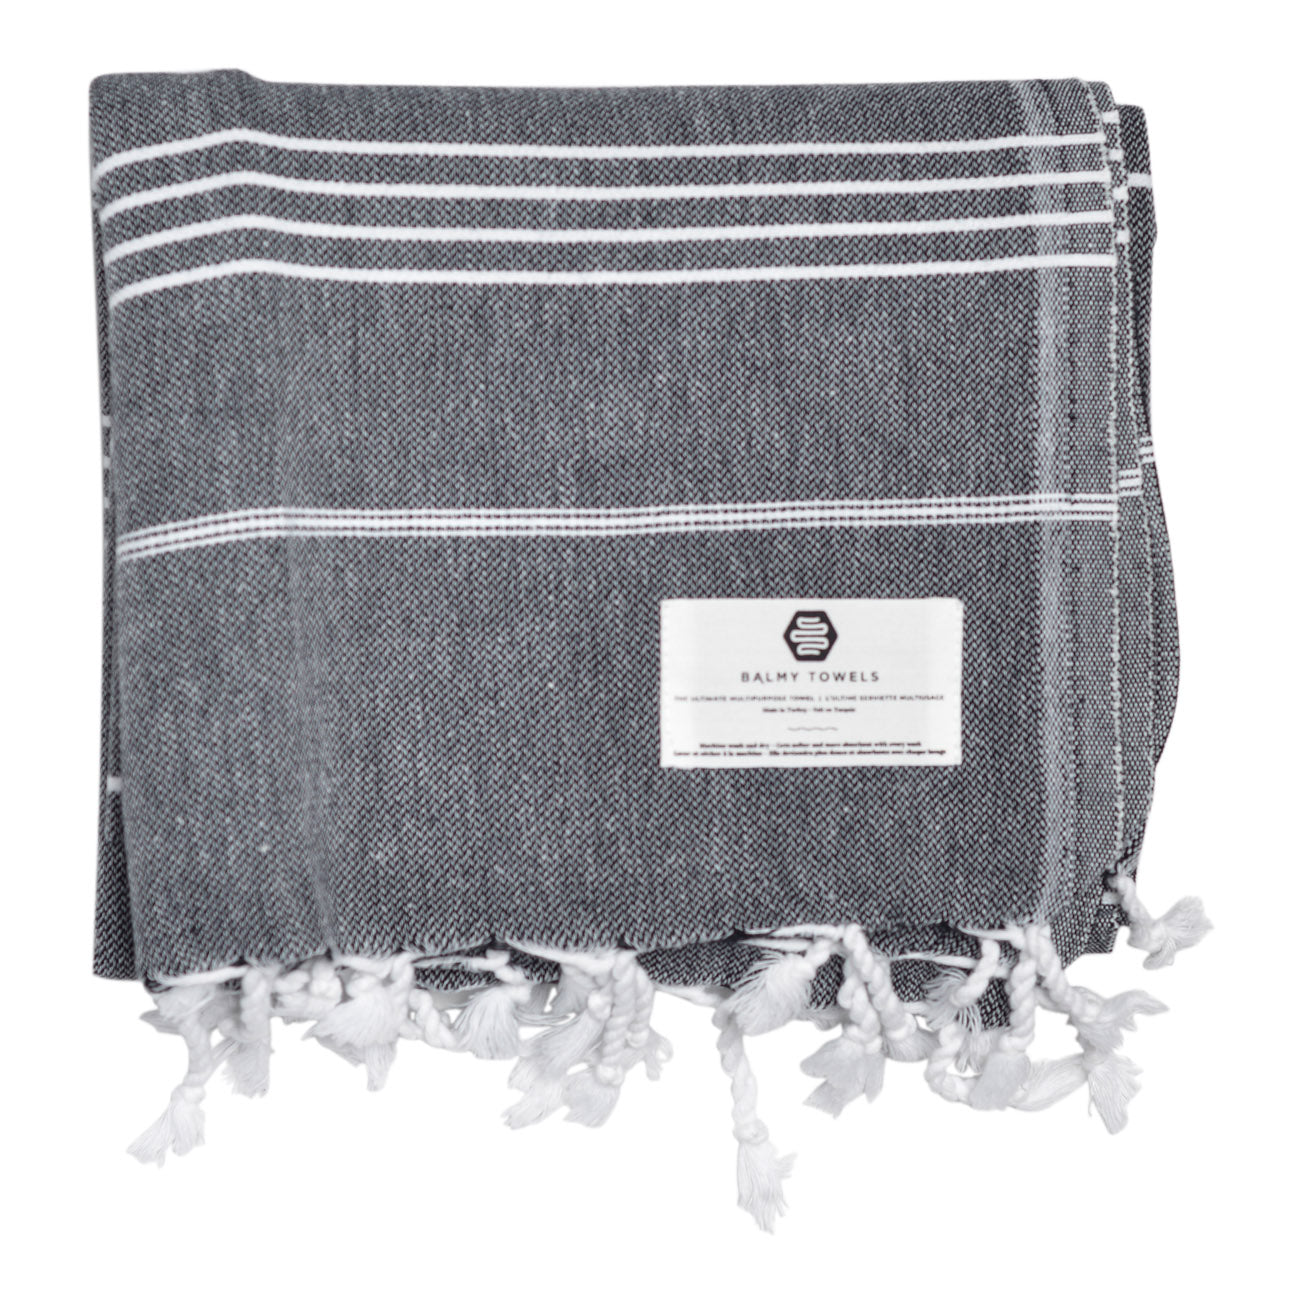 Black cotton beach and bath Turkish towel with different sizes of thin white stripes